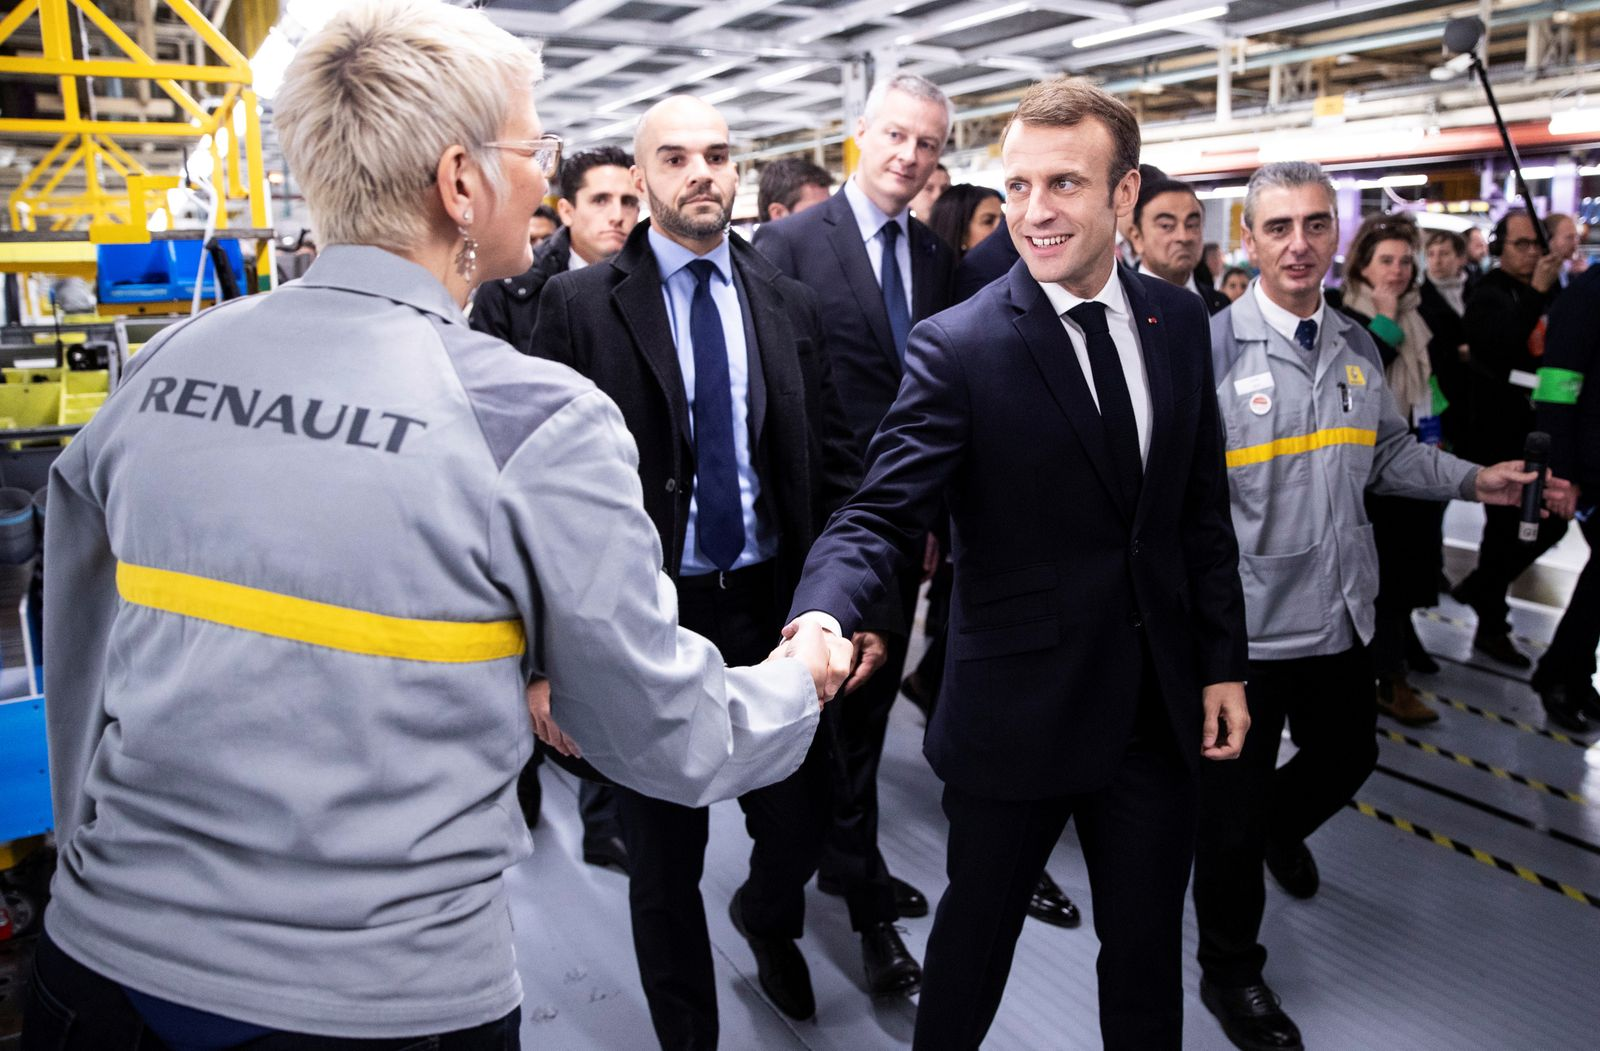 French President Emmanuel Macron visits the Renault factory in Maubeuge